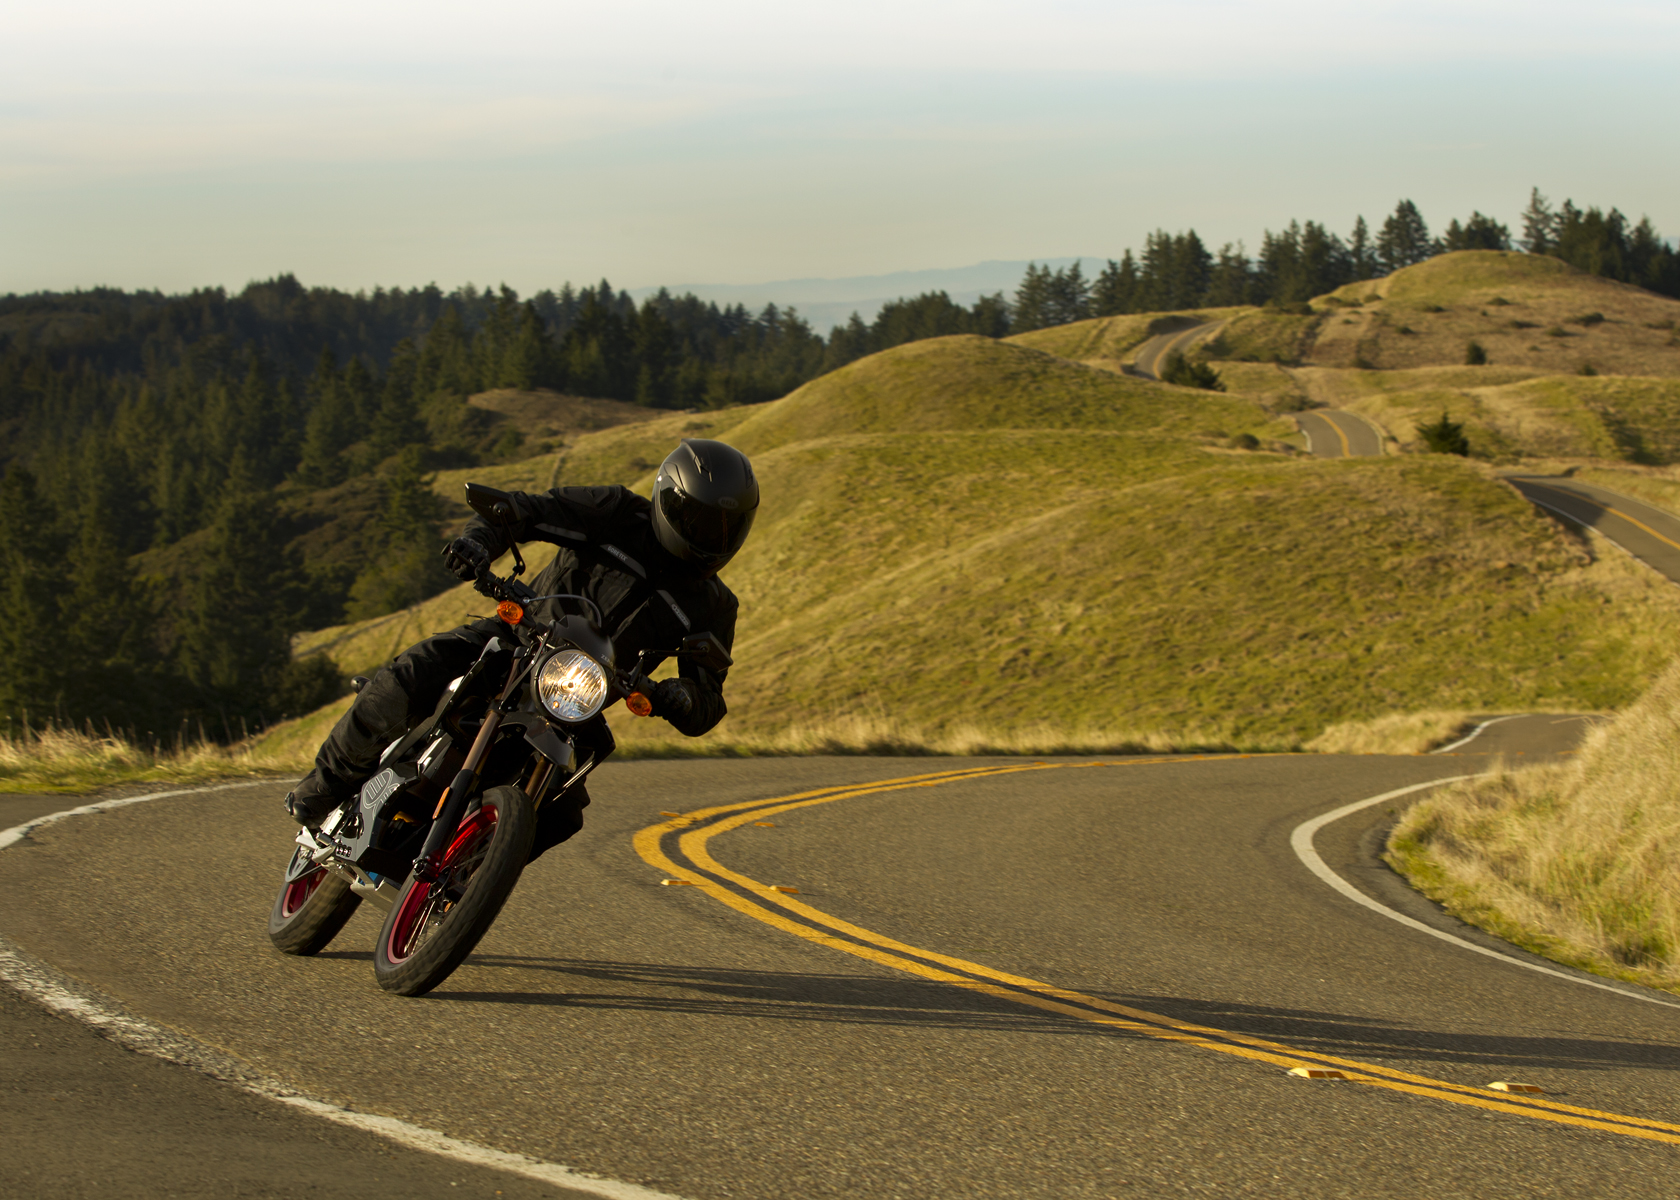 '.2011 Zero DS Electric Motorcycle: Yellow Hills, Lean Left.'